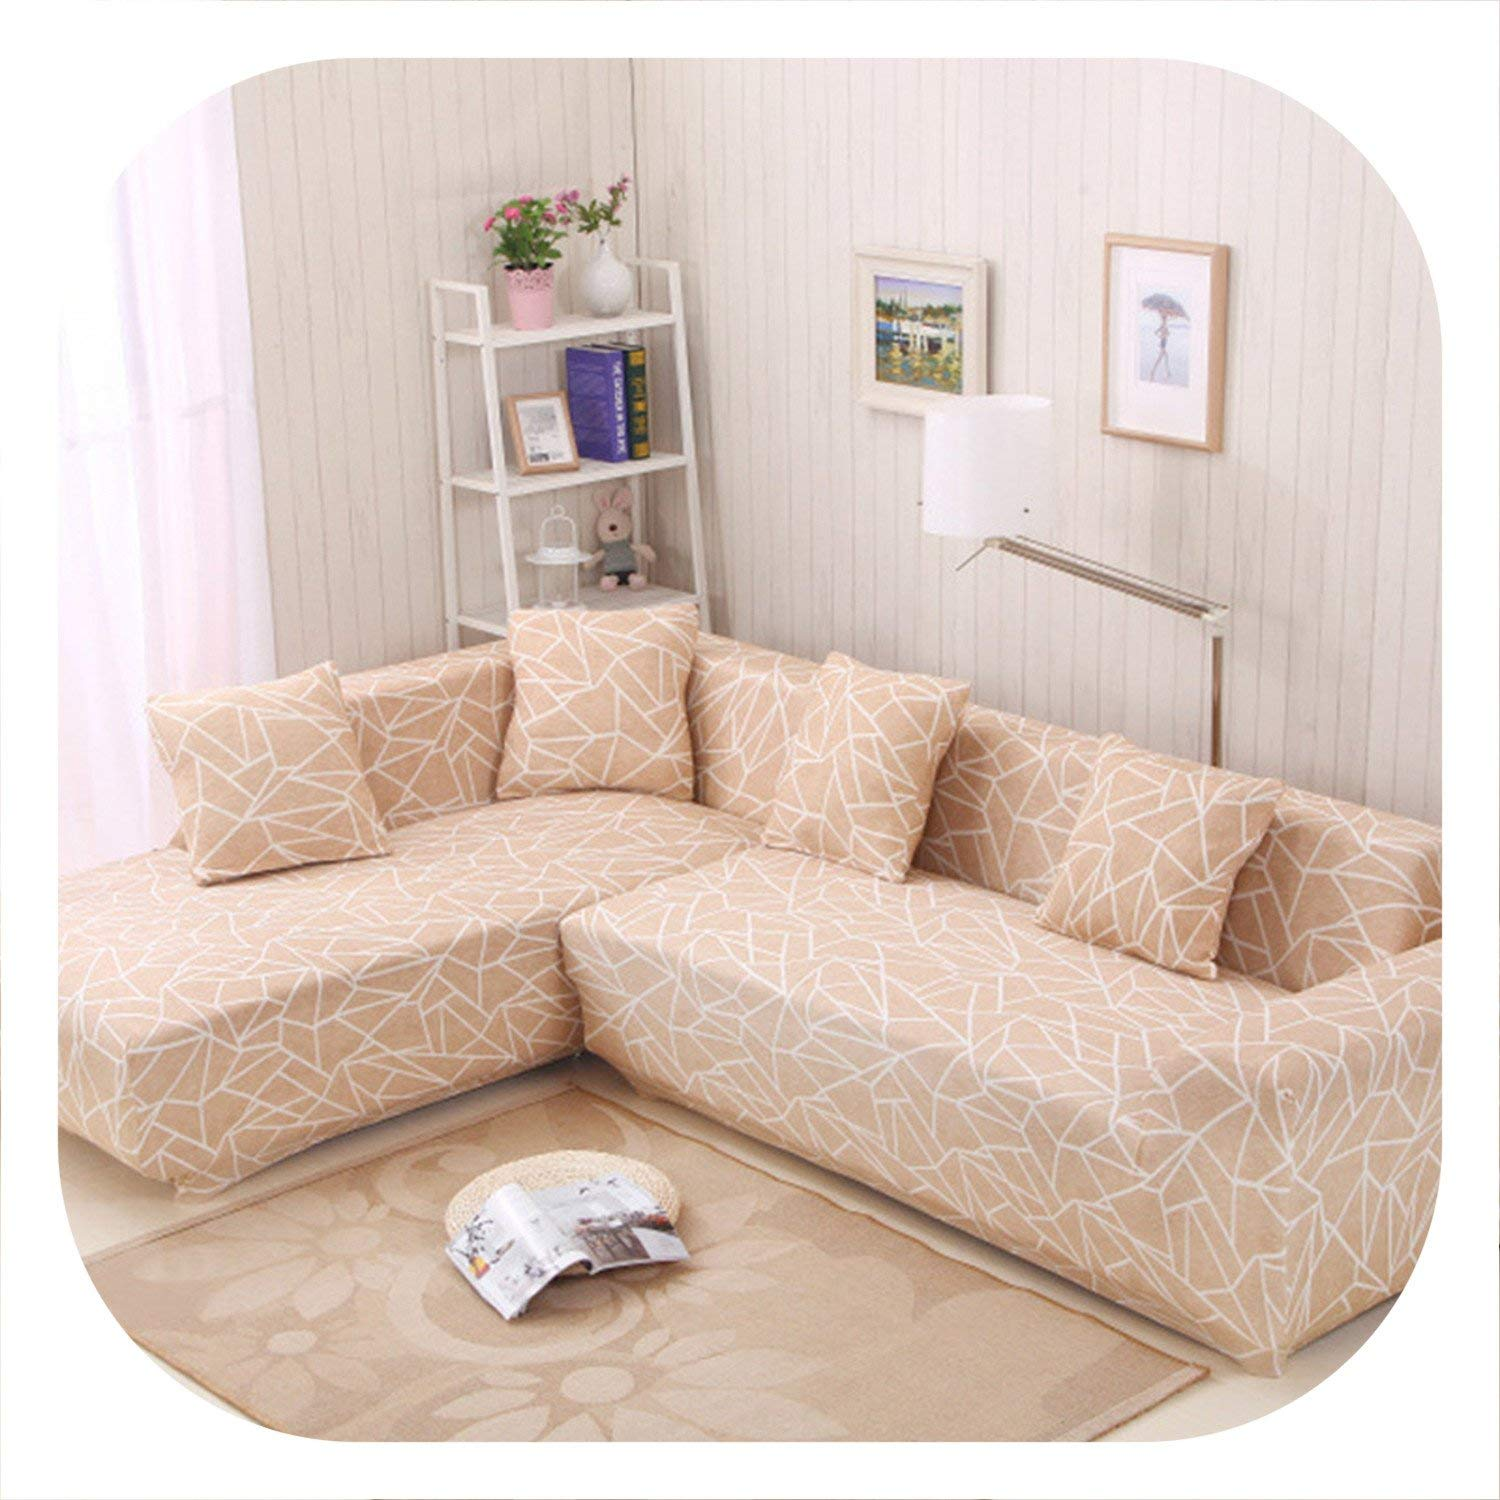 Amazon.com: New face 2 Pieces Covers for Corner Sofa Chaise ...